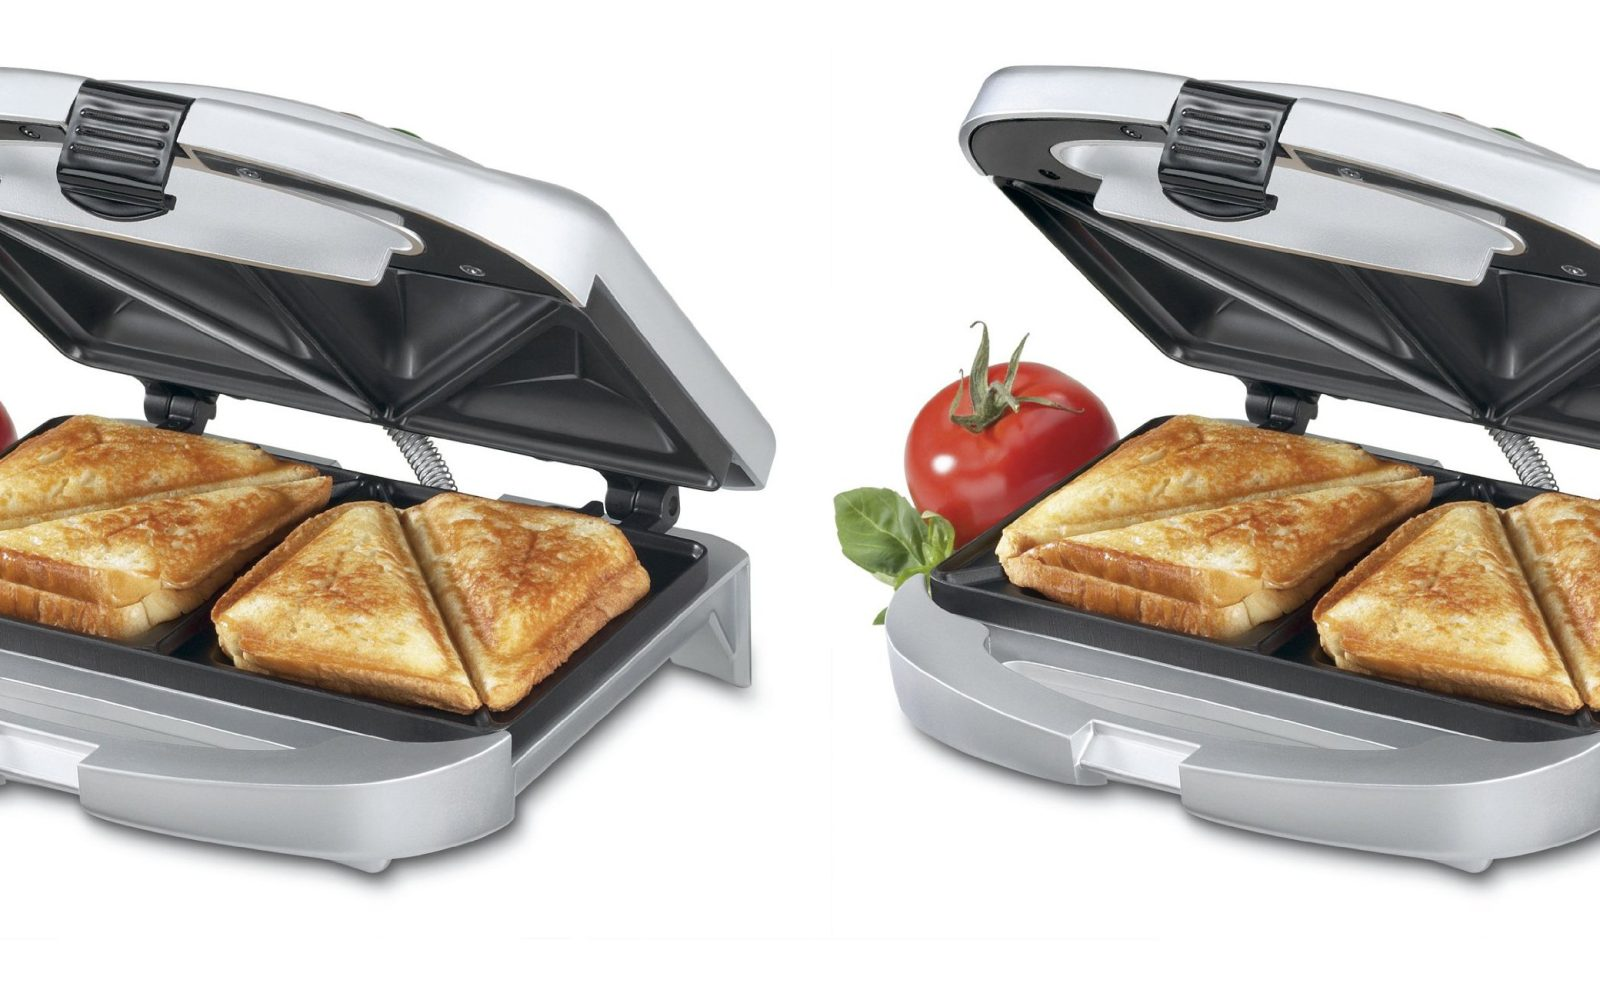 Cuisinart S Nonstick Dual Electric Sandwich Grill Hits Its